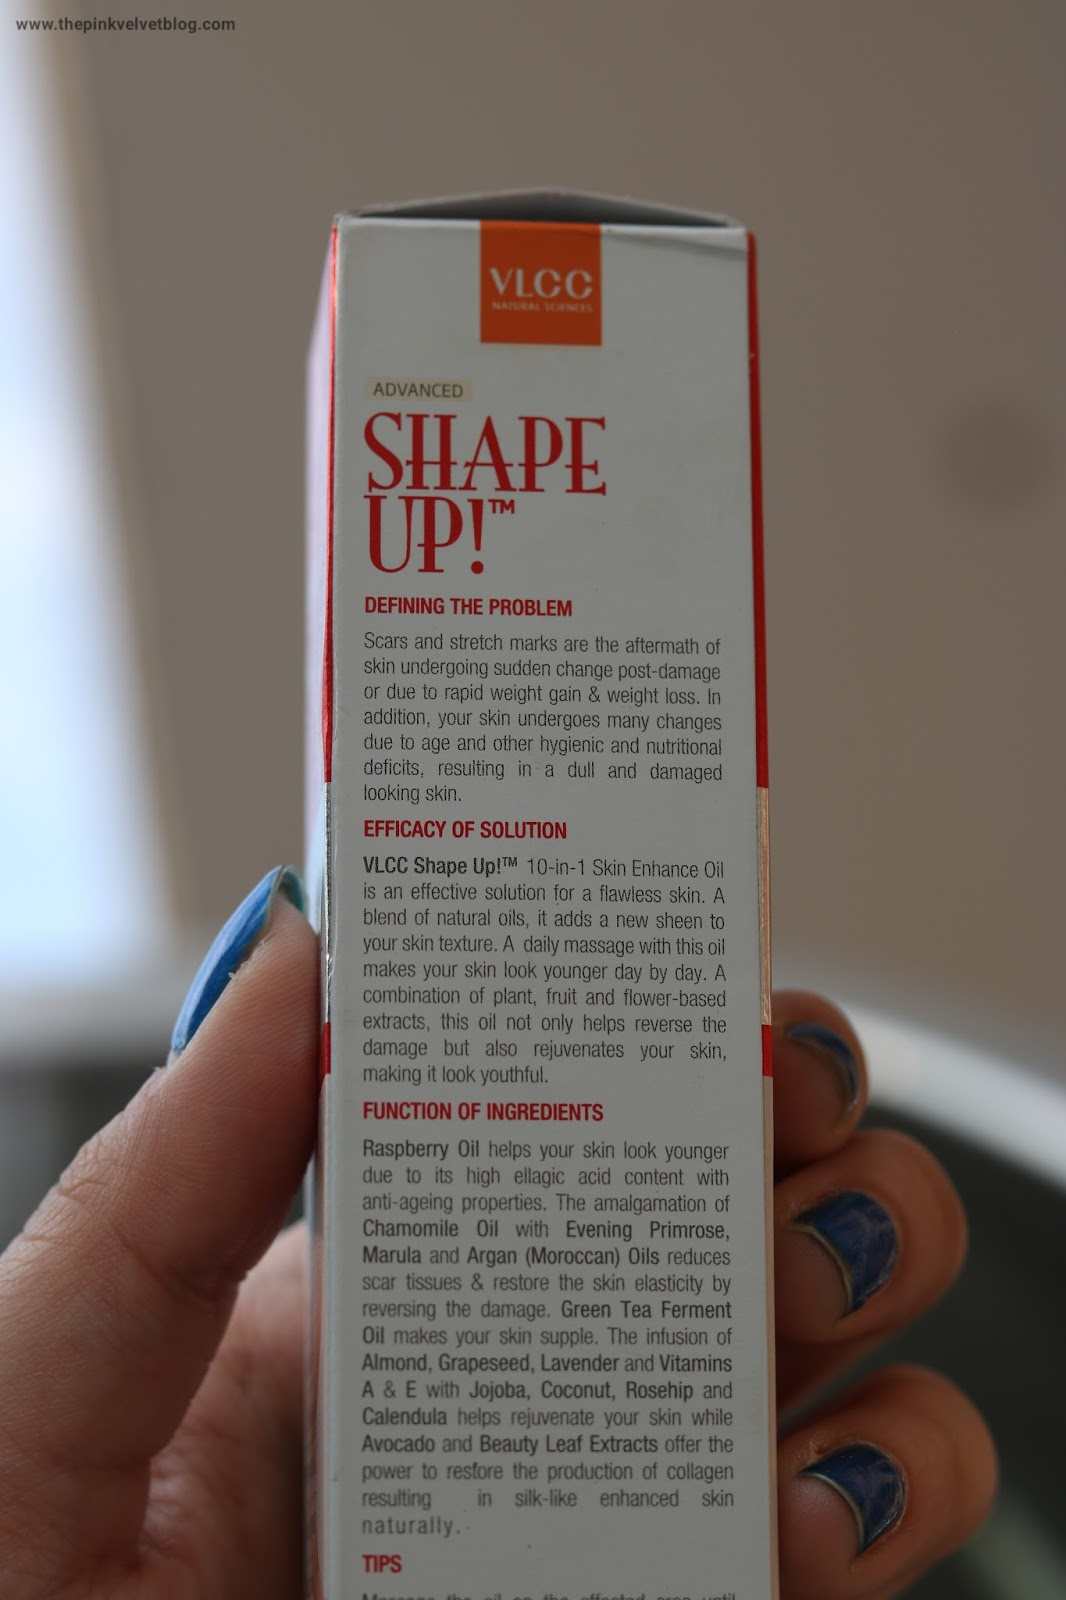 VLCC Shape Up 10 in 1 Skin Enhance Oil